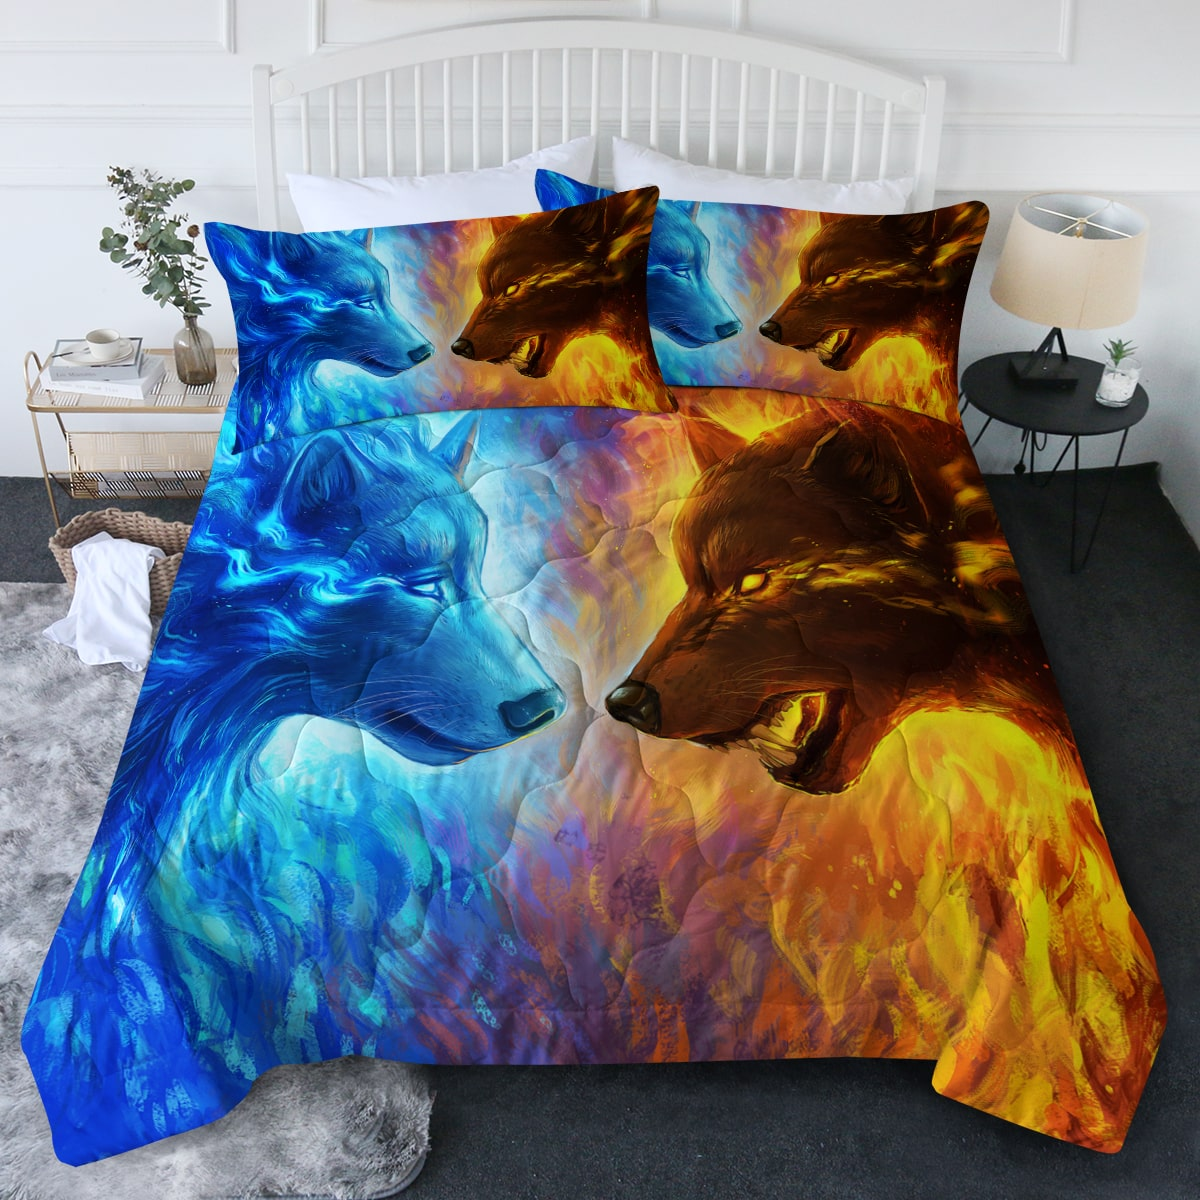 Fire and Ice by Jojoes Art Comforter Bedding Set